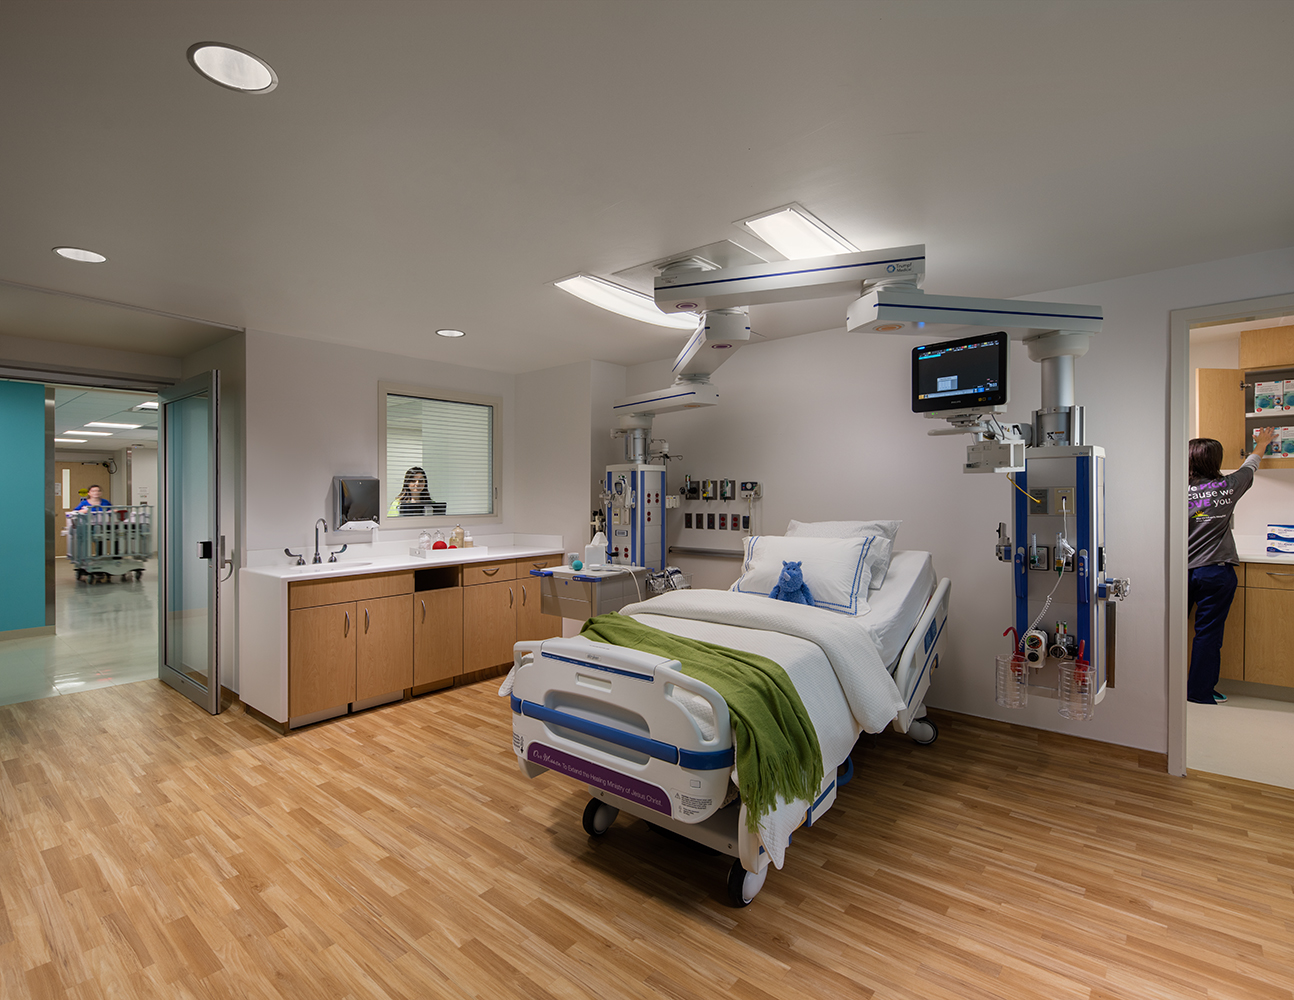 Unity tandem overbed luminaires allow for attractive patient room lighting without obstructing medical equipment.